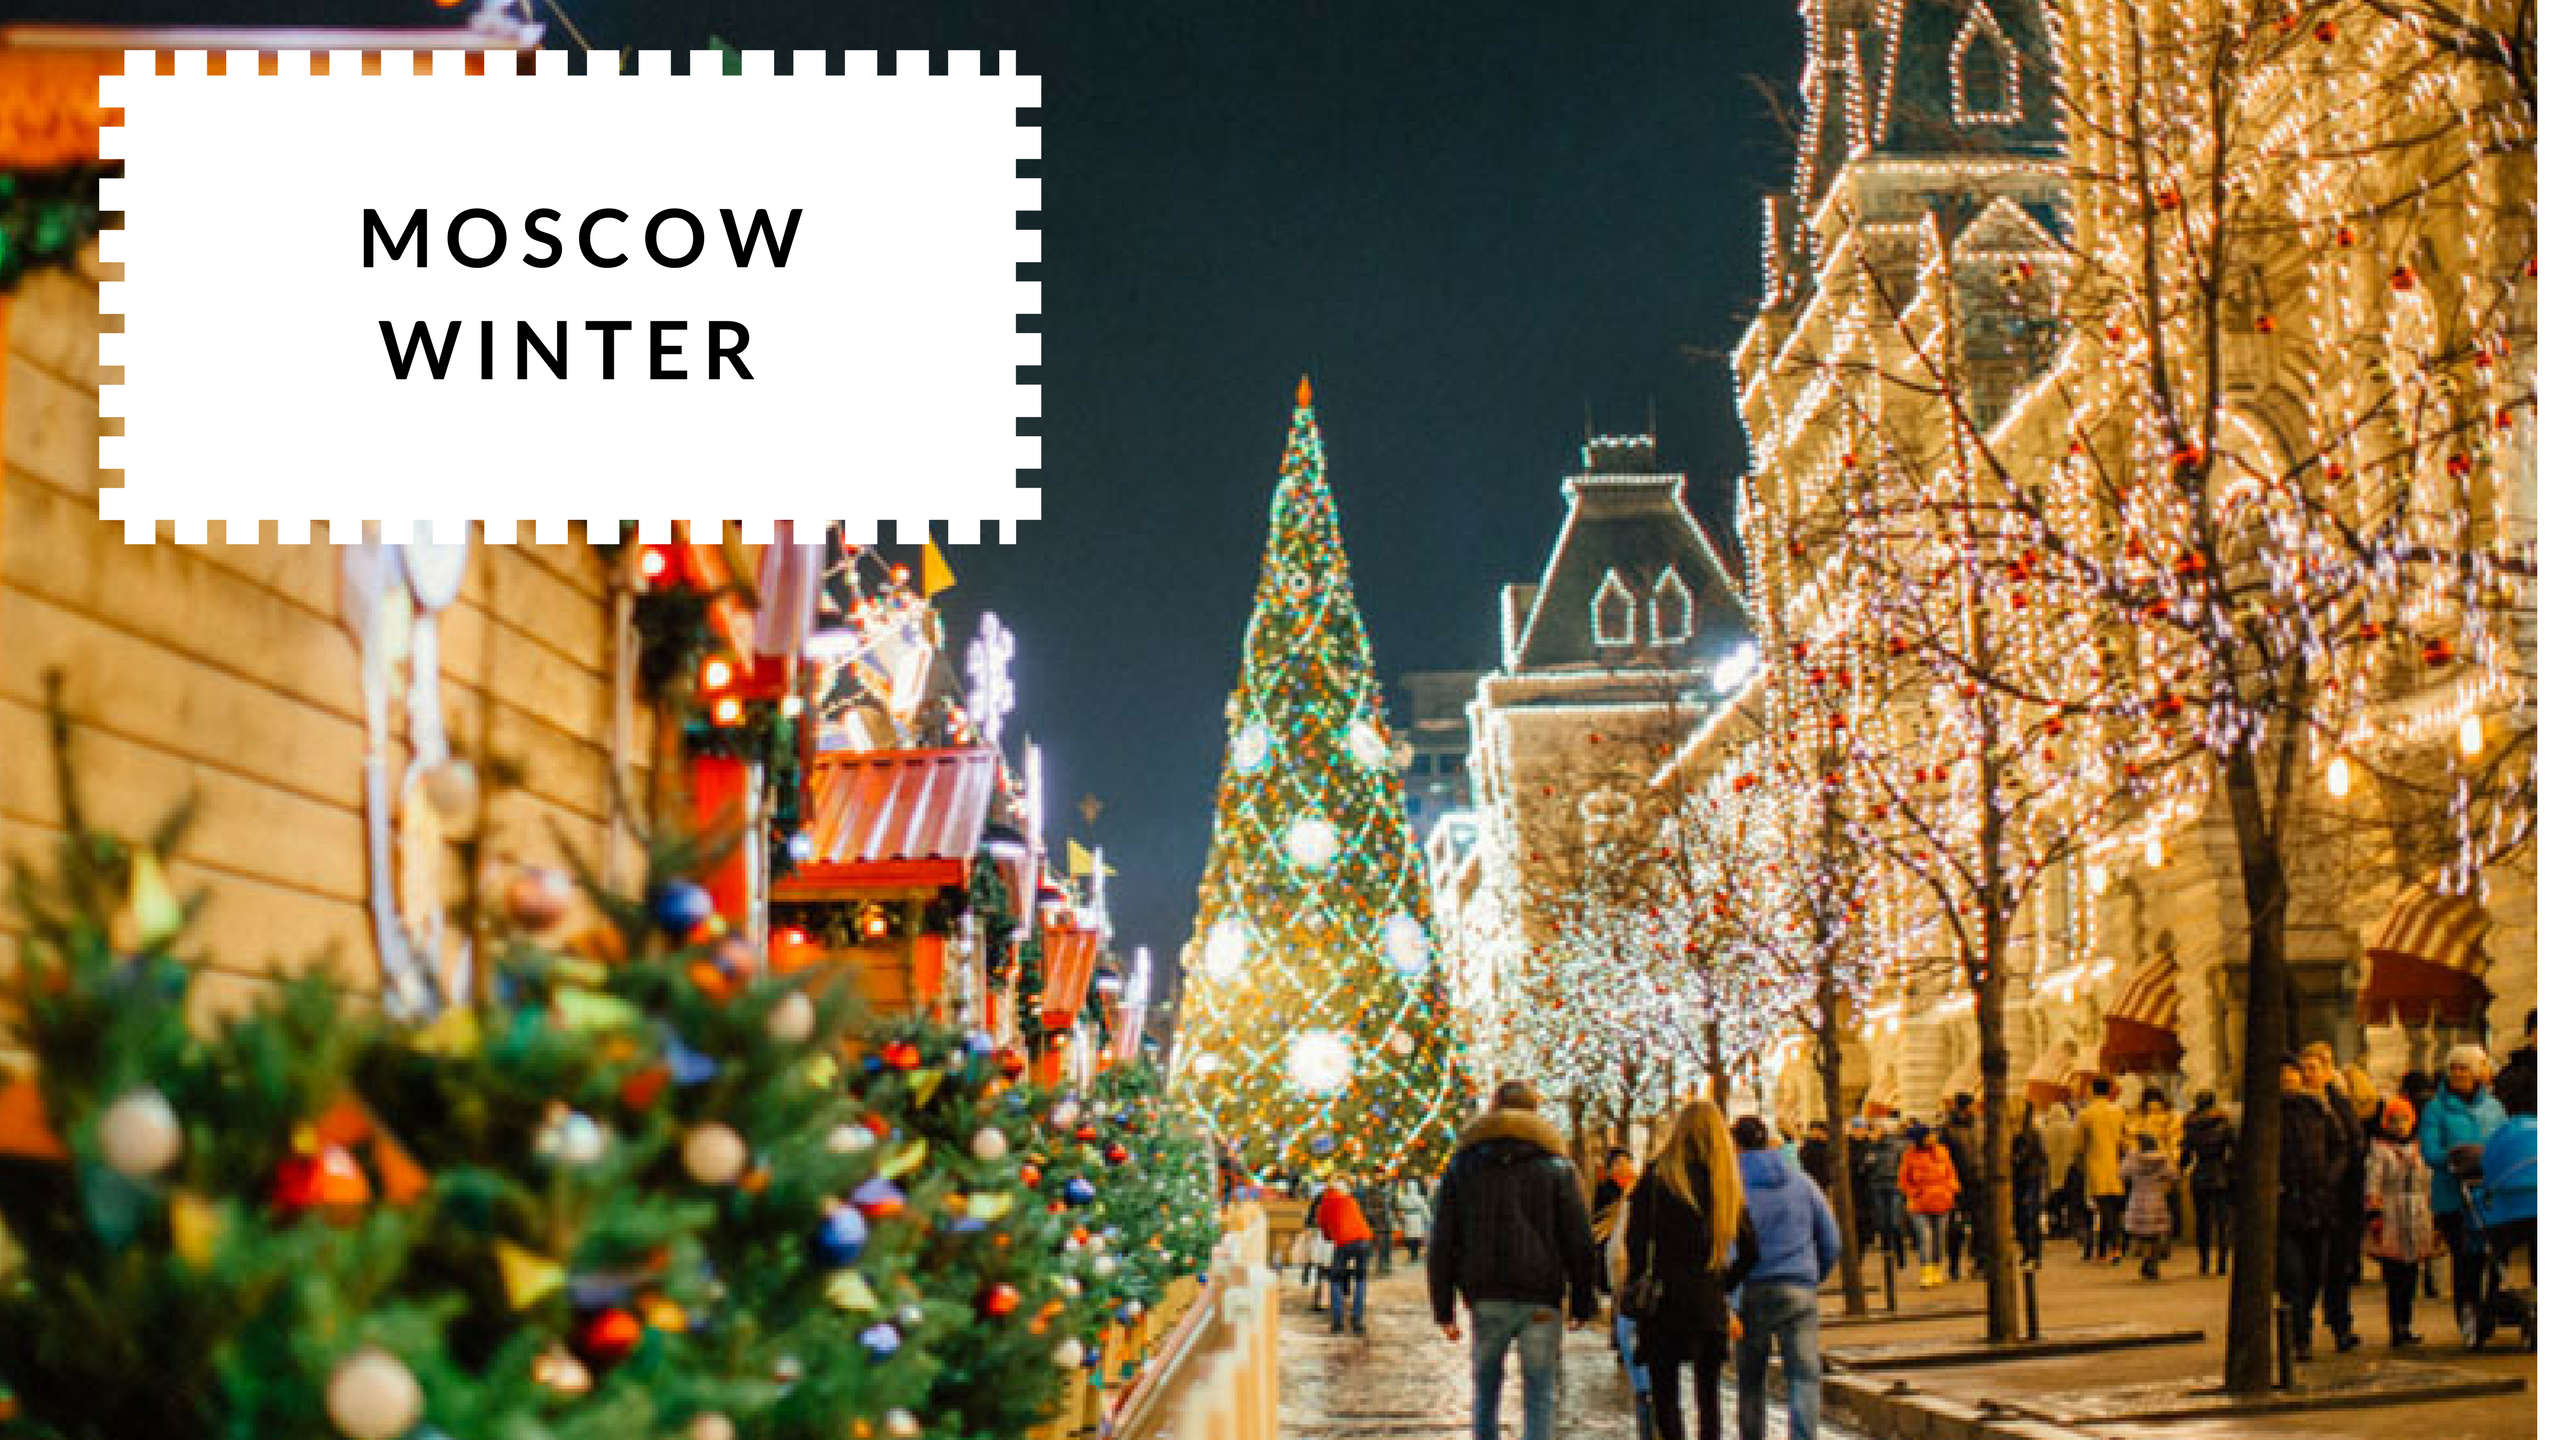 The Best Time To Visit Moscow - Winter | Moscow Places Blog